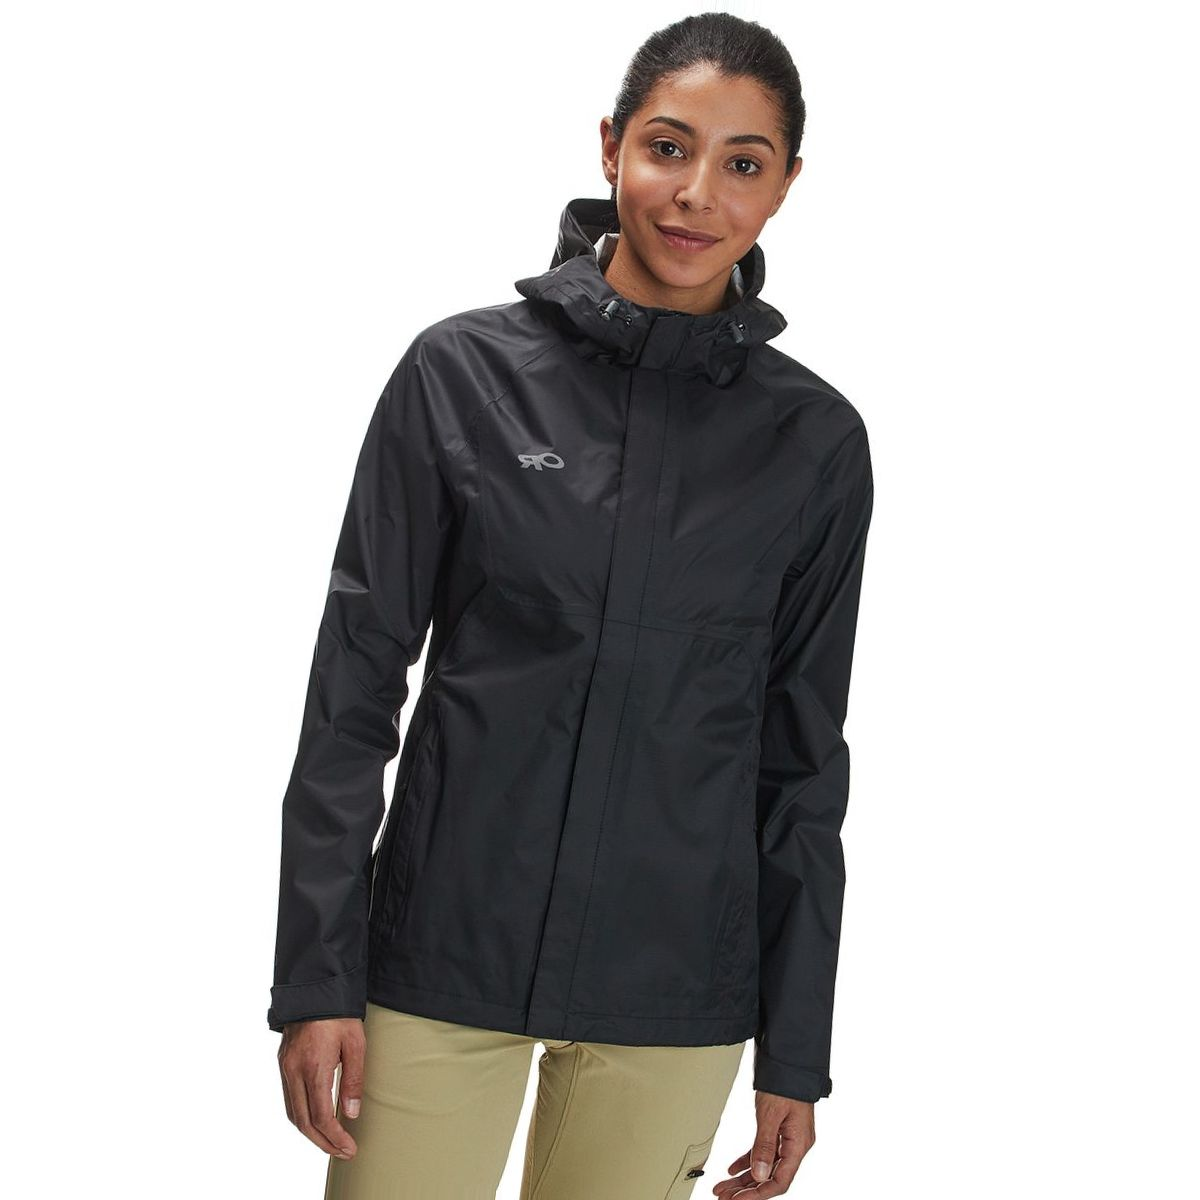 Outdoor Research Apollo Jacket - Women's